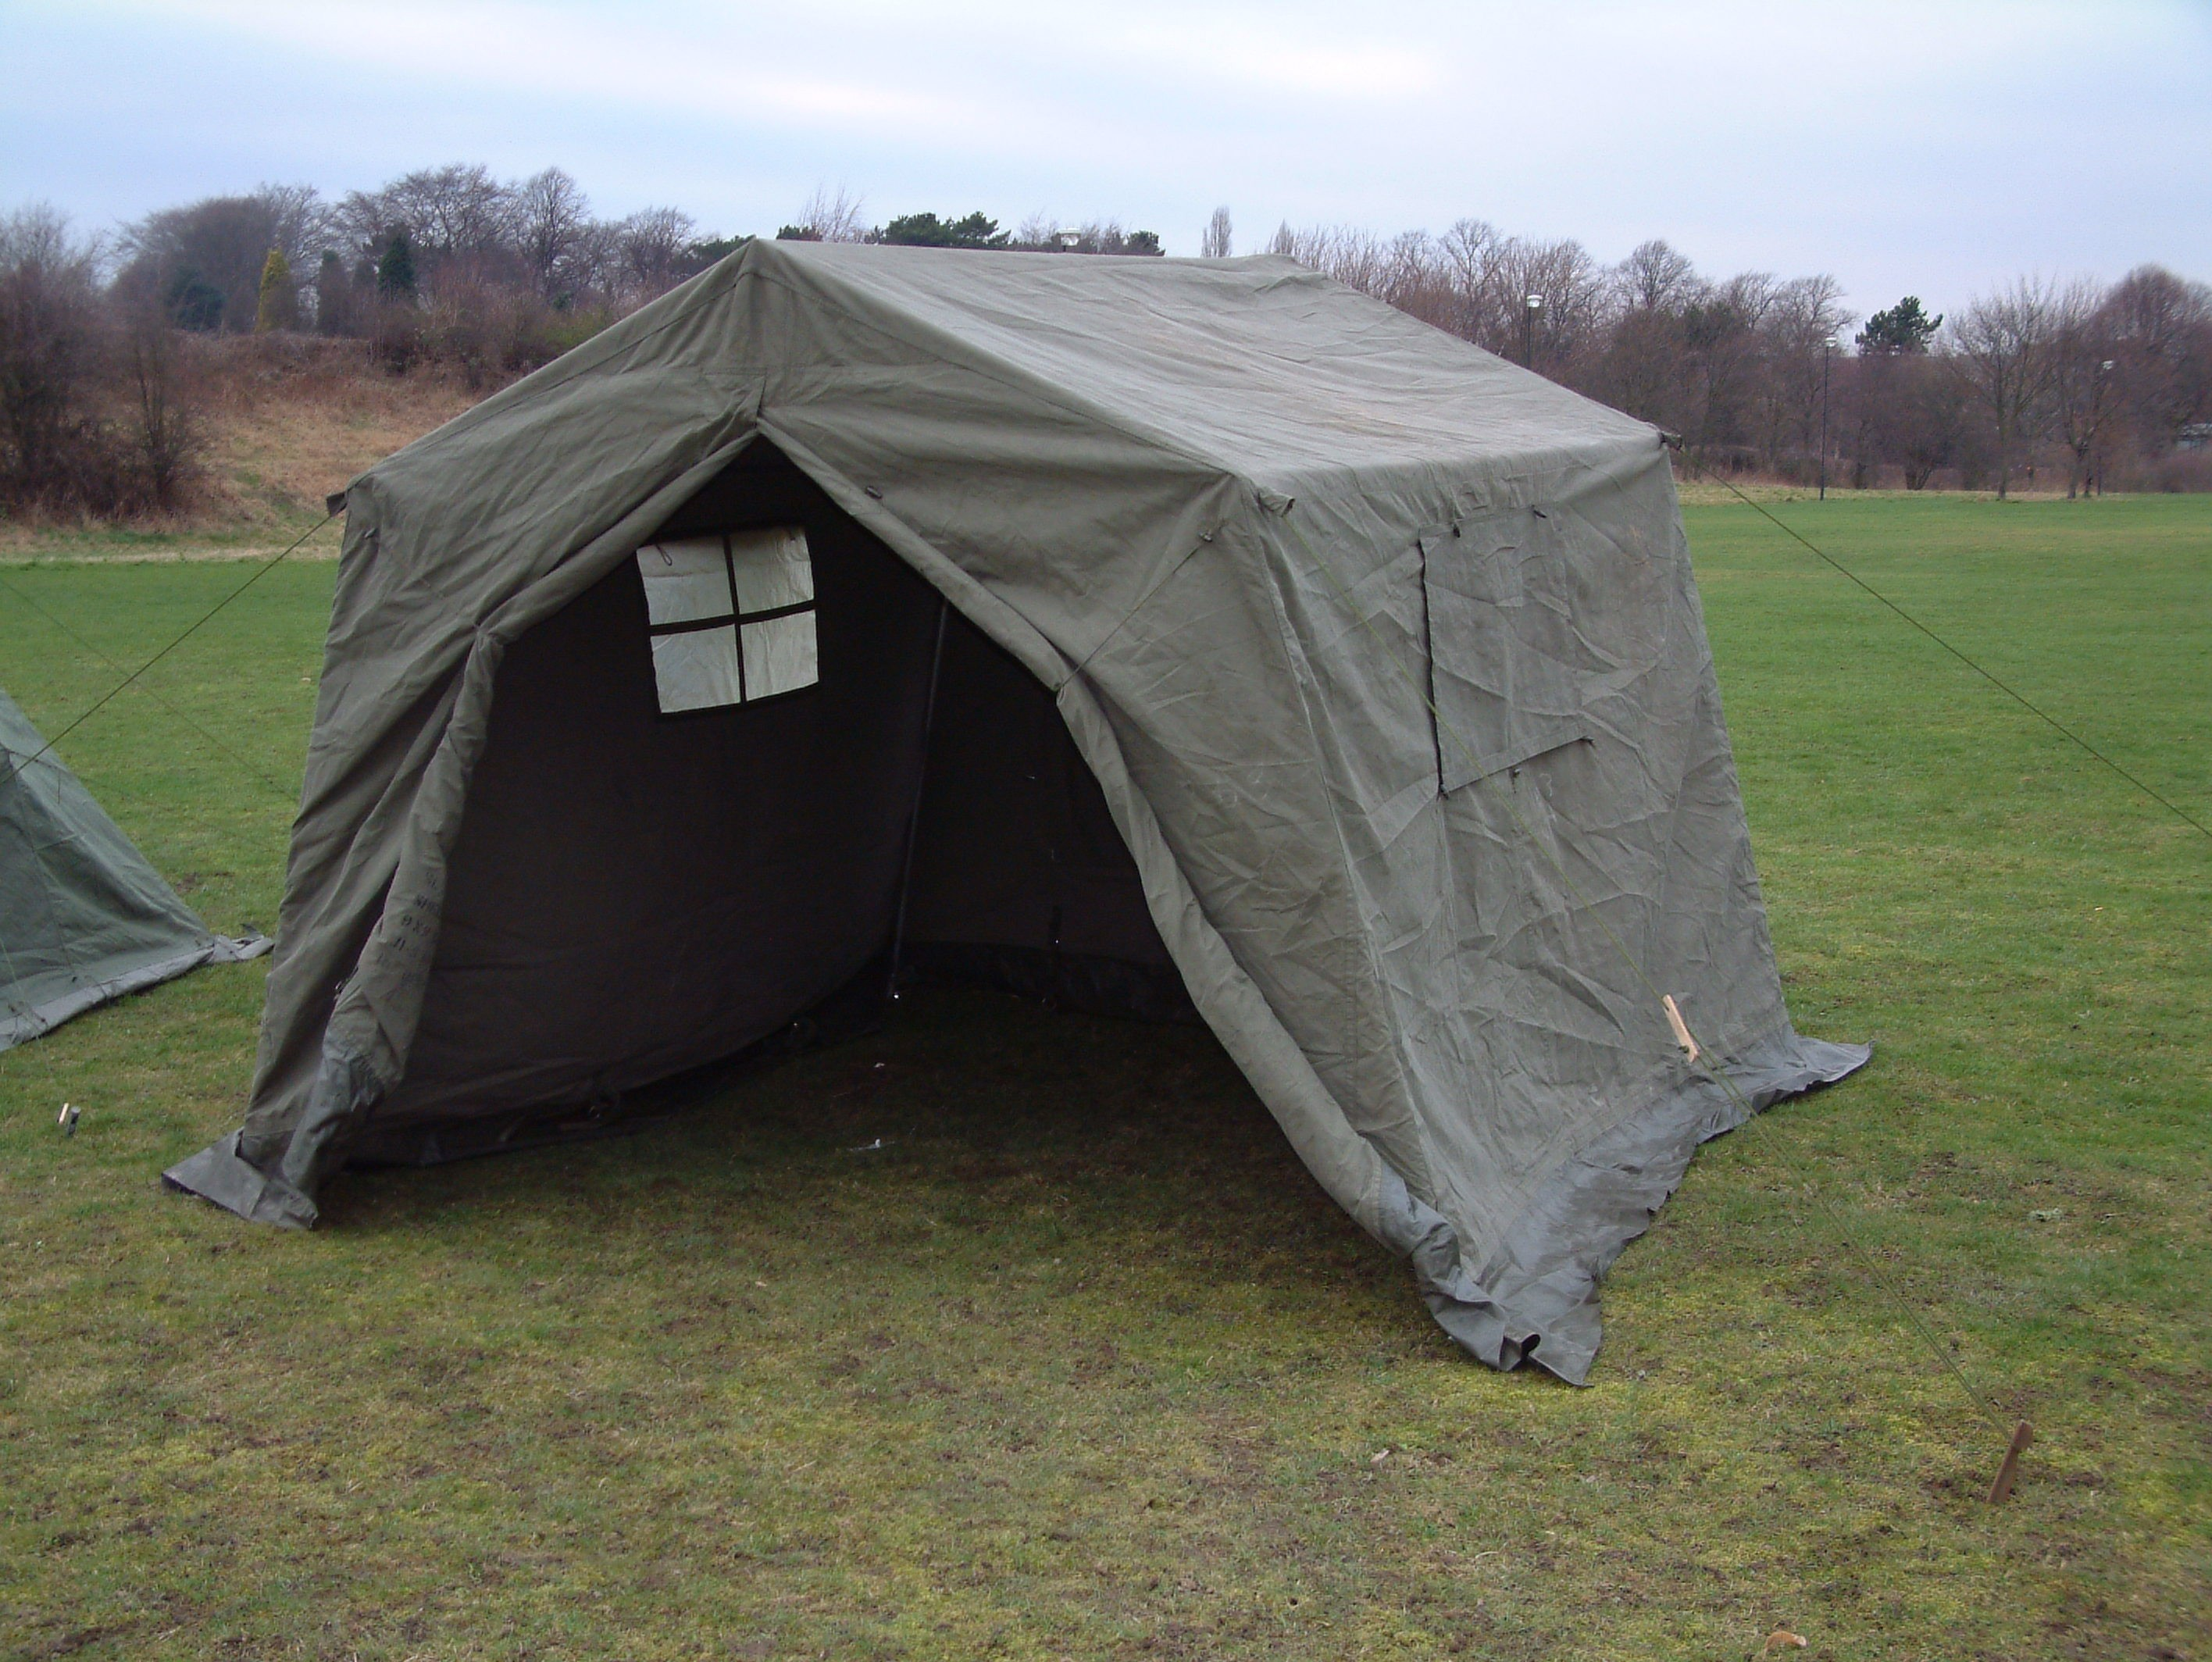 9 x 9 ex british army frame tent super grade for A frame canvas tents for sale